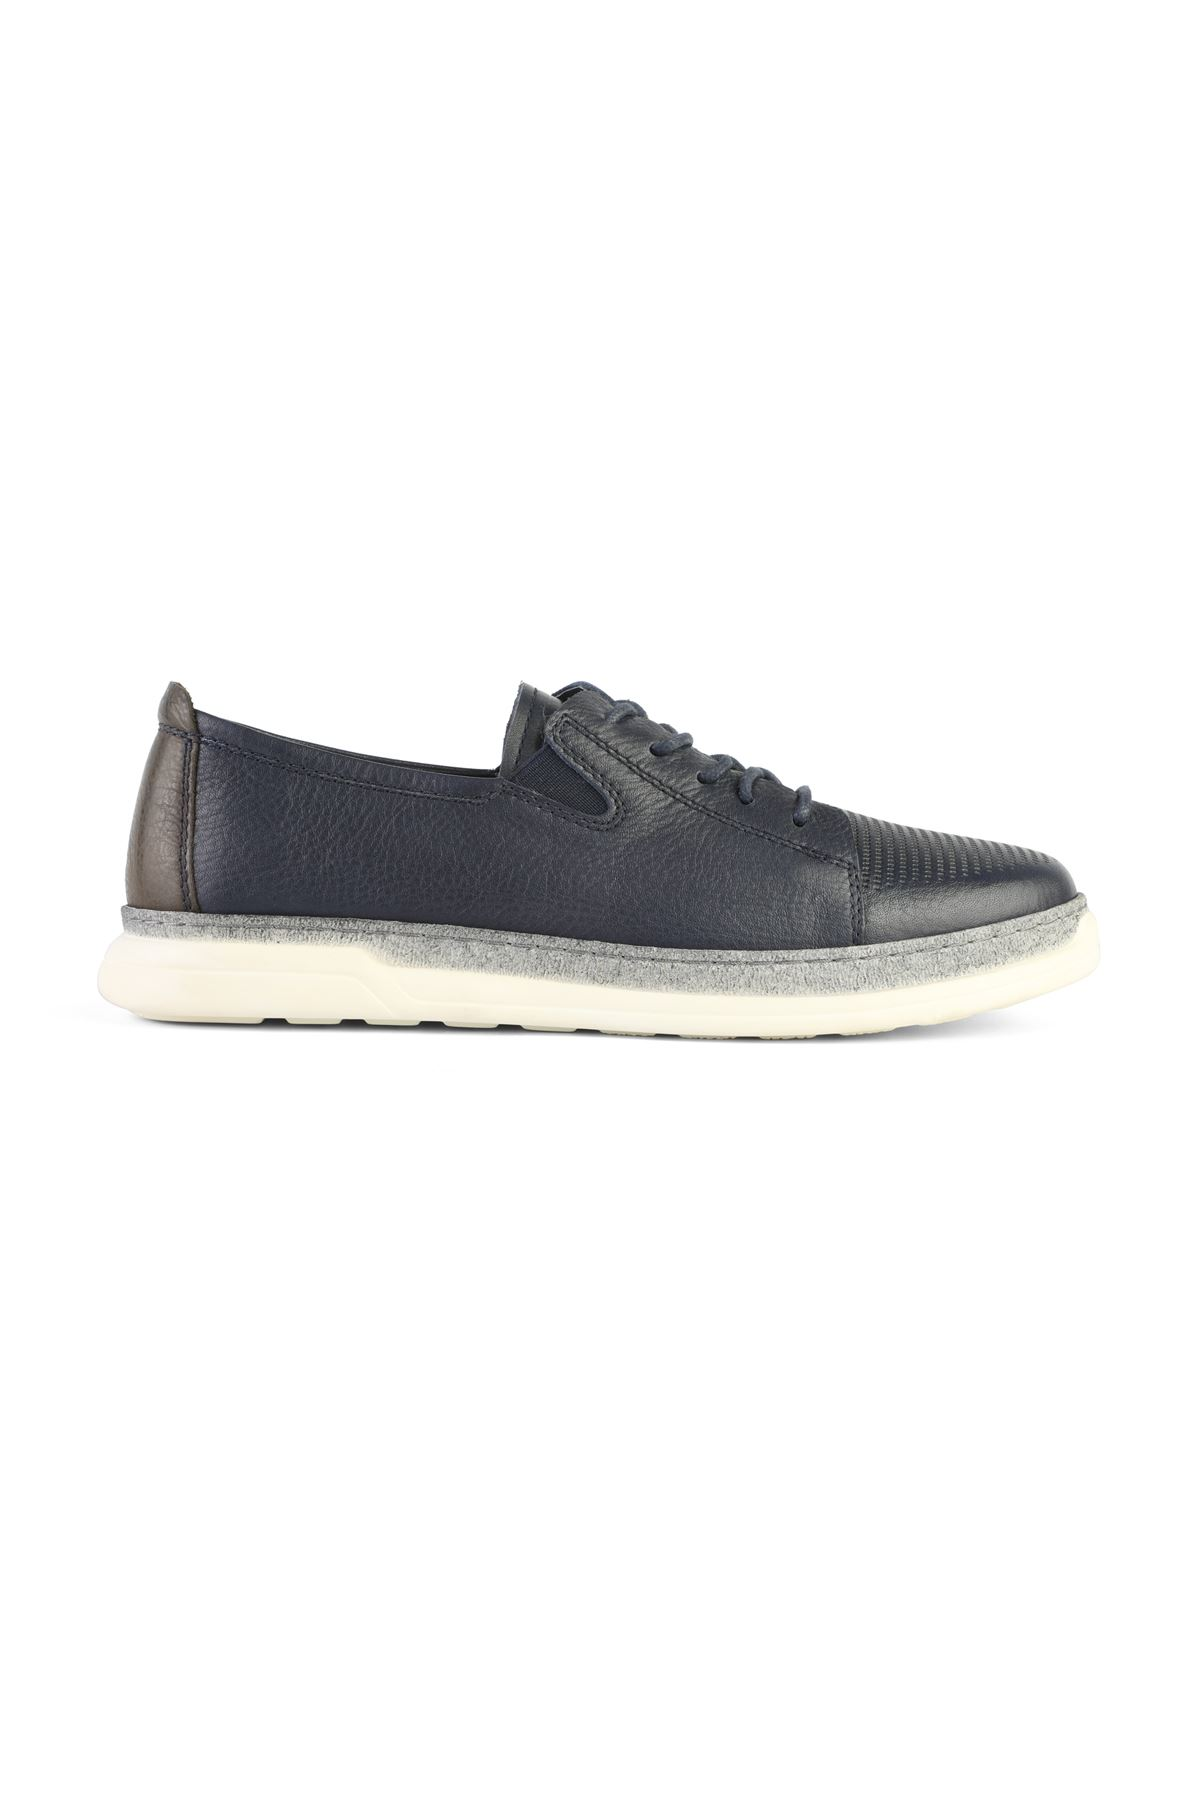 Libero 3307 Navy Blue Loafers